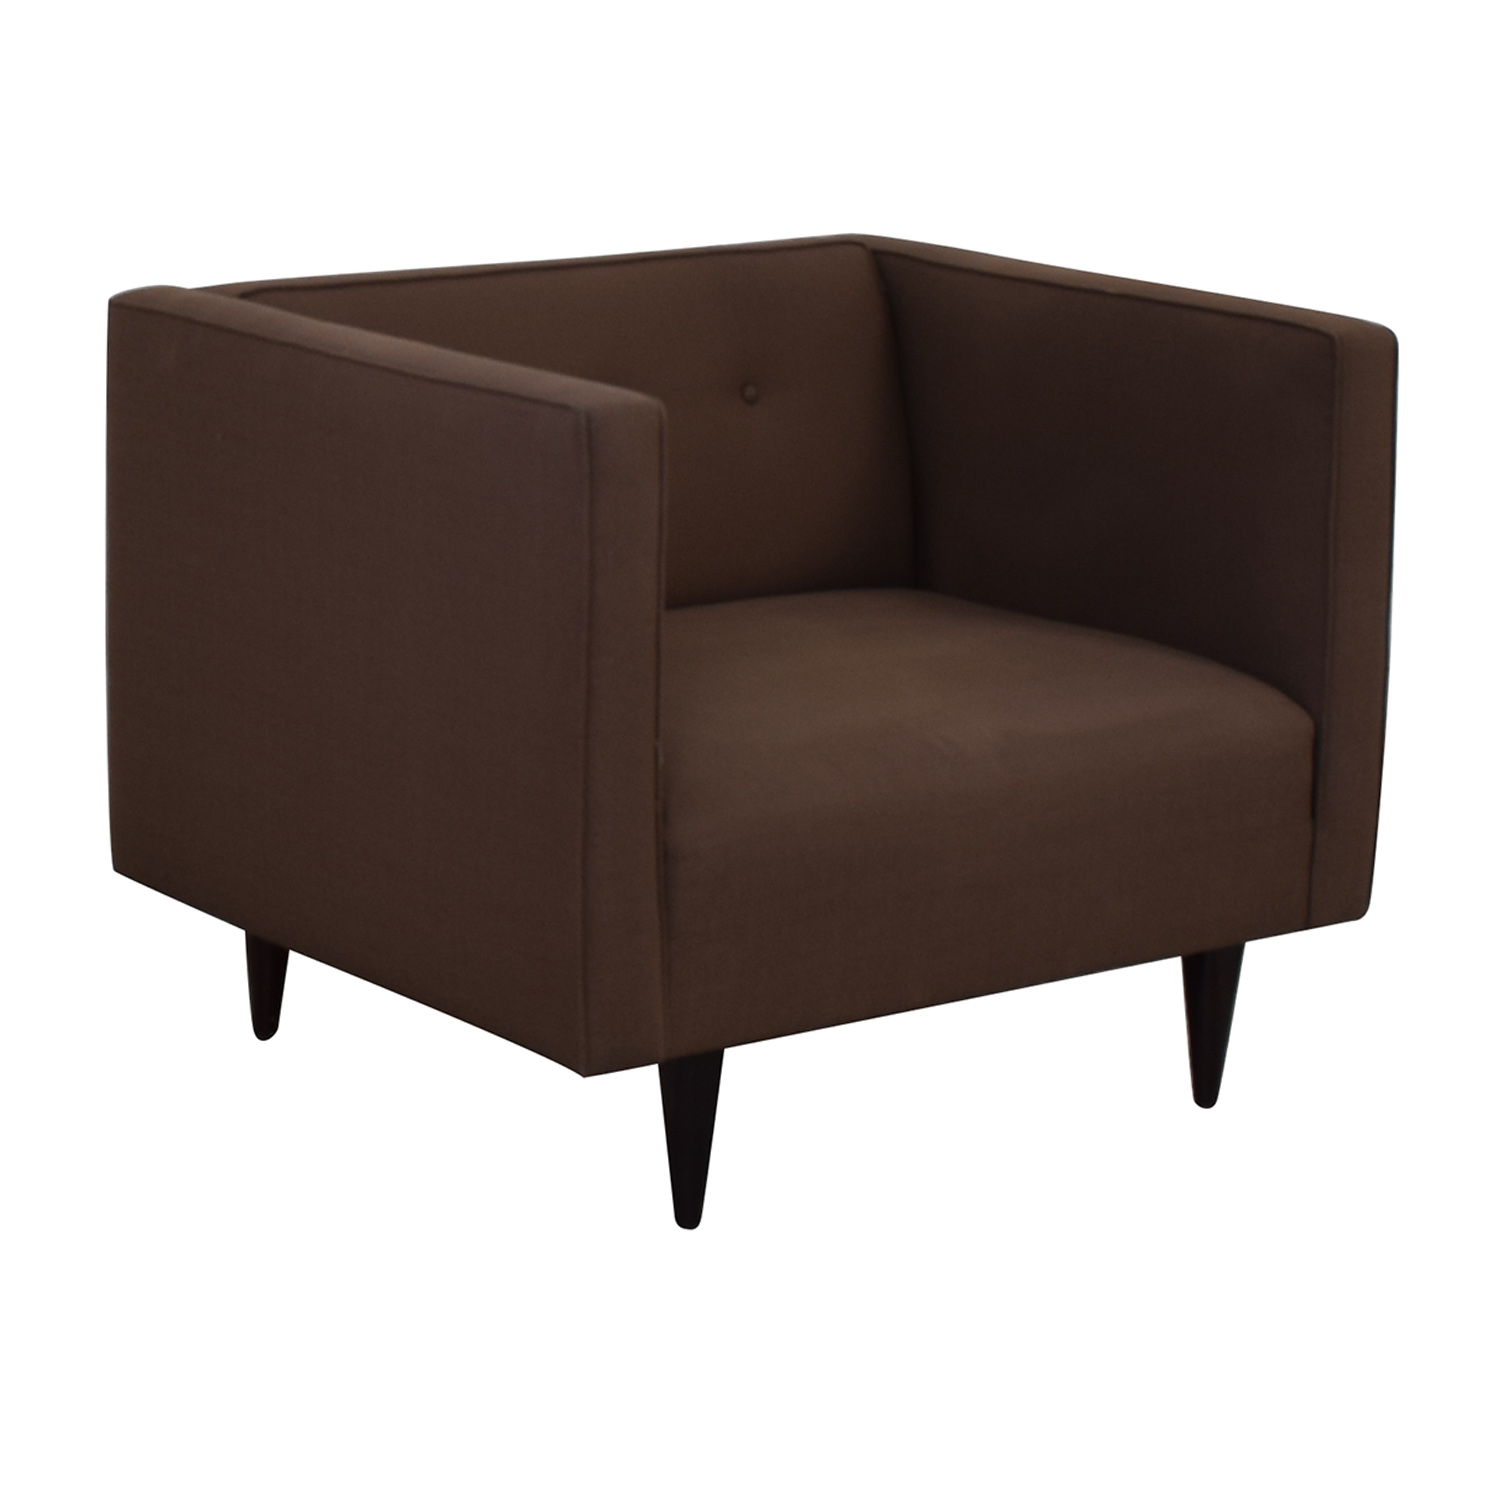 Room & Board Mid Century Accent Chair sale